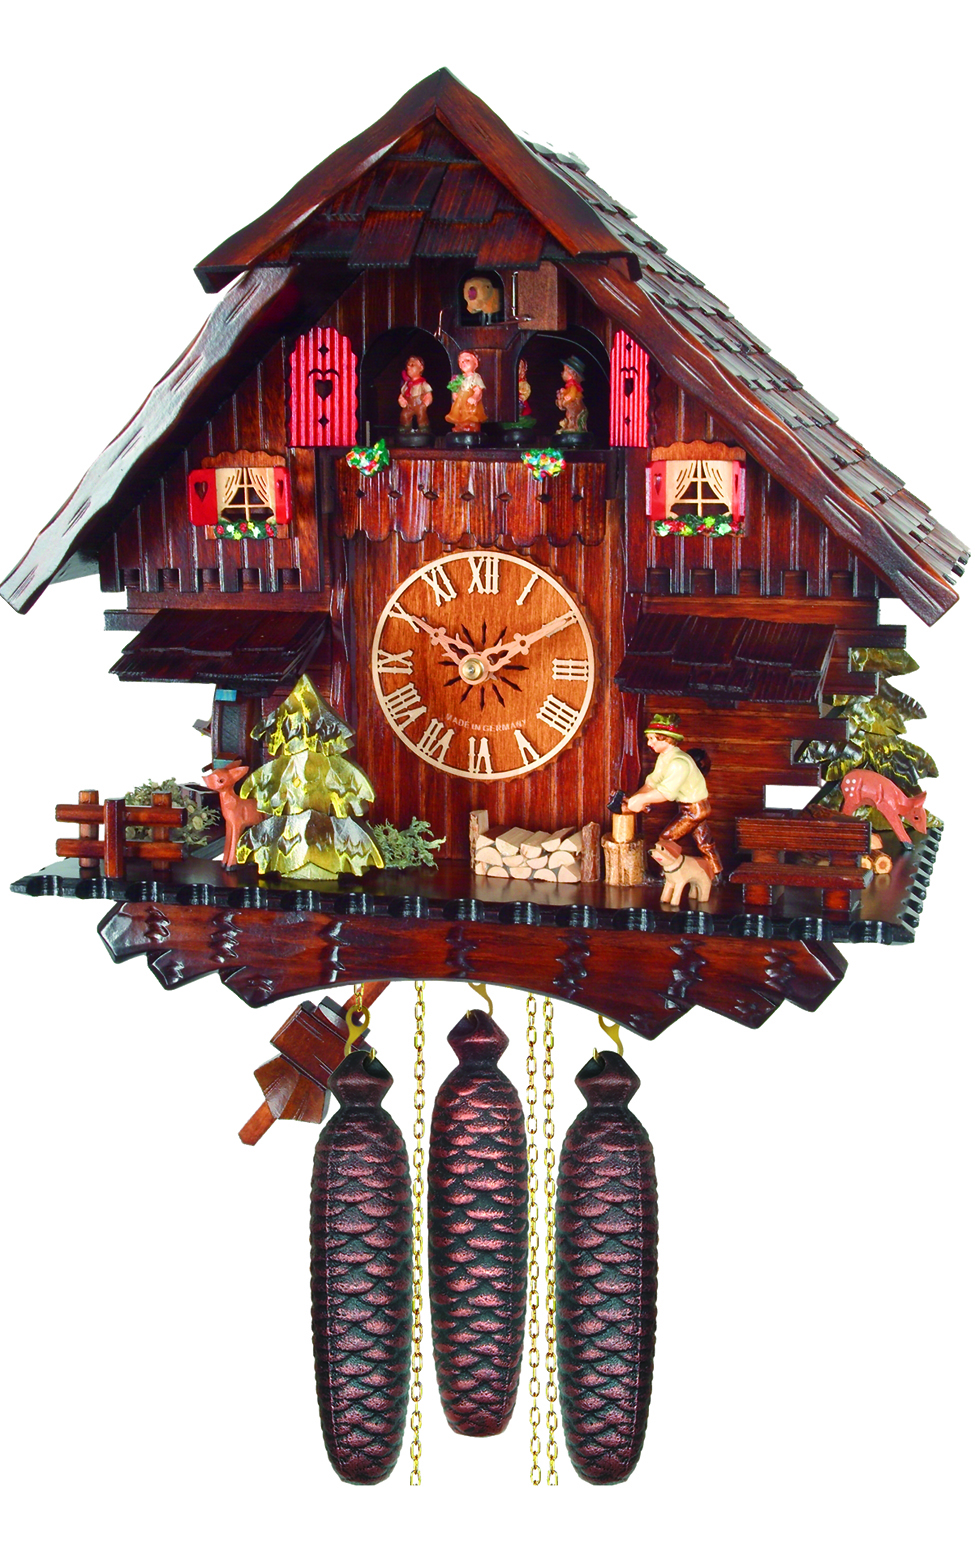 474-8MT 8-Day Chalet Wood Chopper Cuckoo Clock with Music